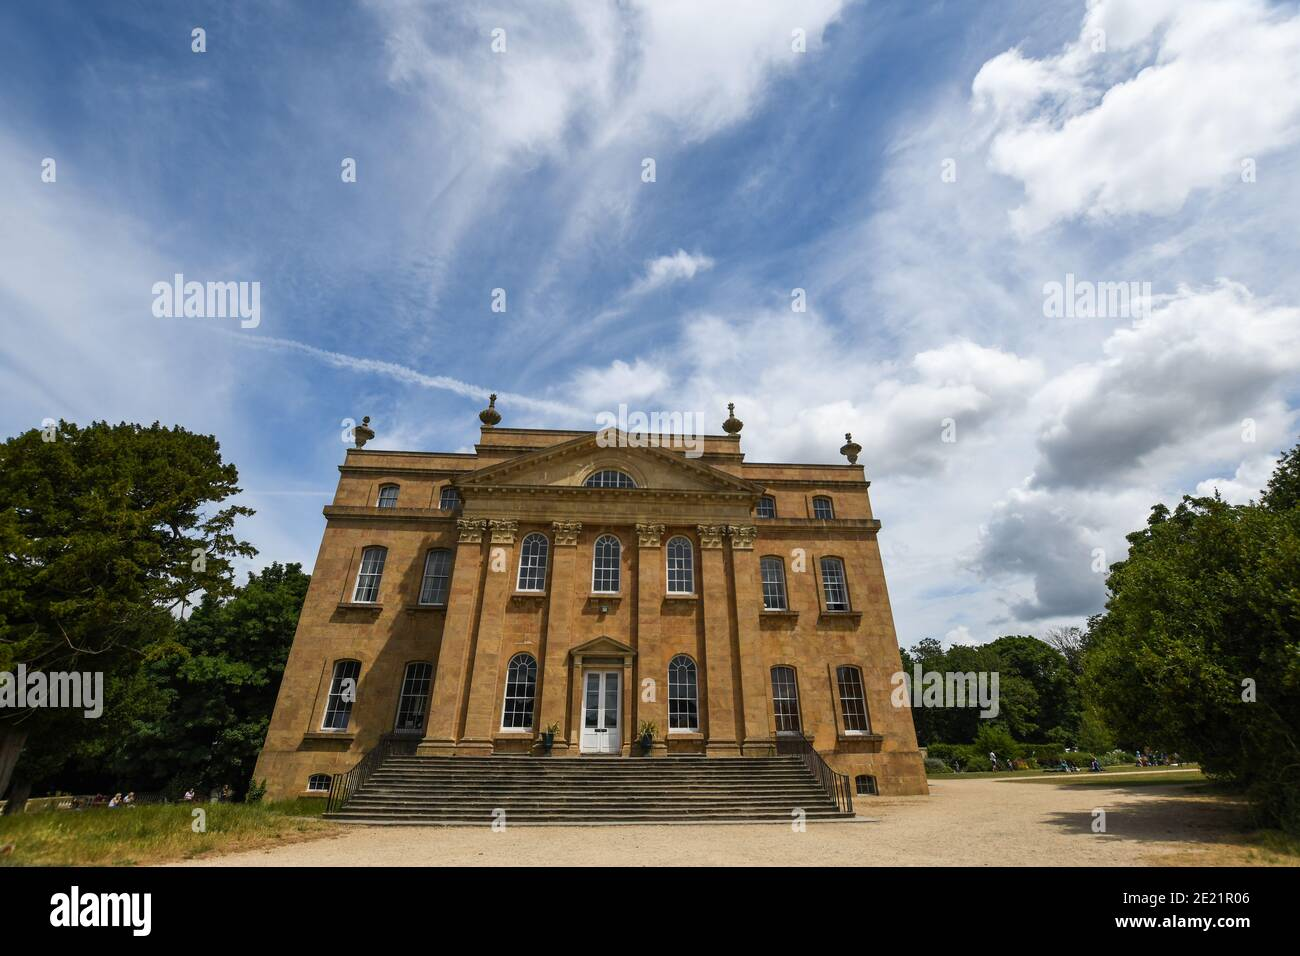 Image of Kings Weston House, a historic building in Kings Weston Lane, Kingsweston, Bristol, England, with beautiful sky in the background and copy sp Stock Photo